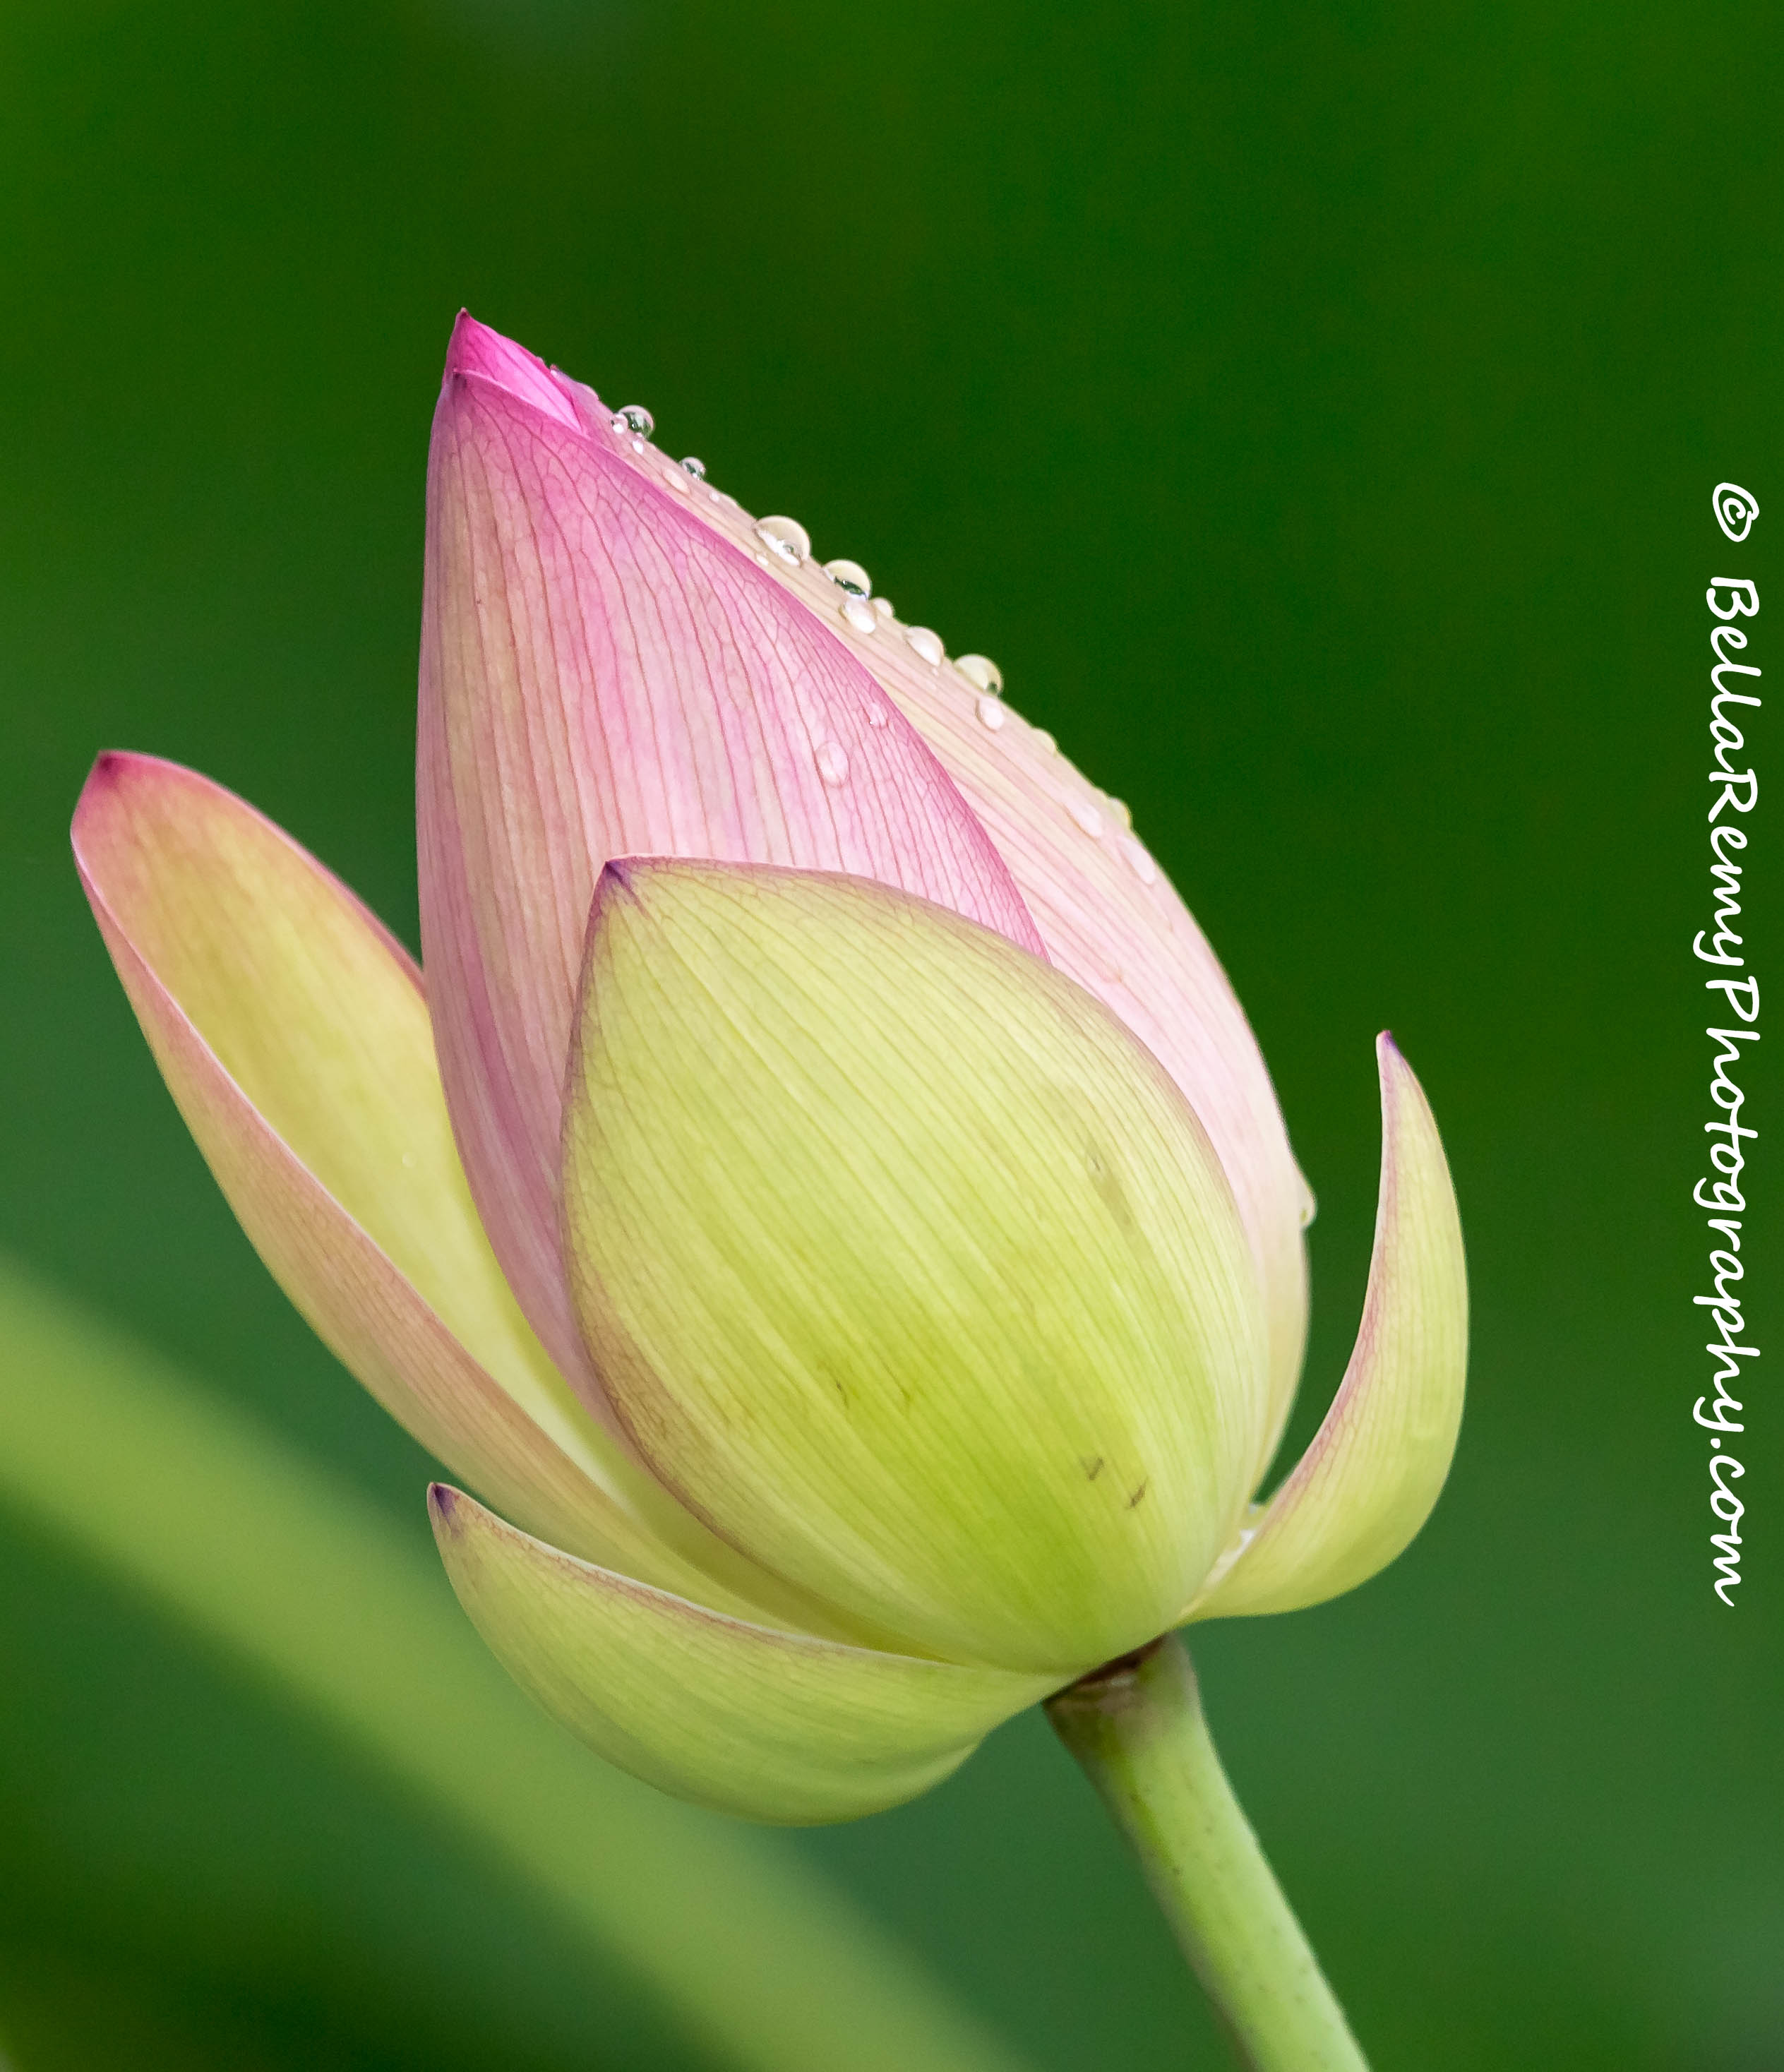 Like a lotus emily carter mitchell nature as art knlwrth4jul14 5652 izmirmasajfo